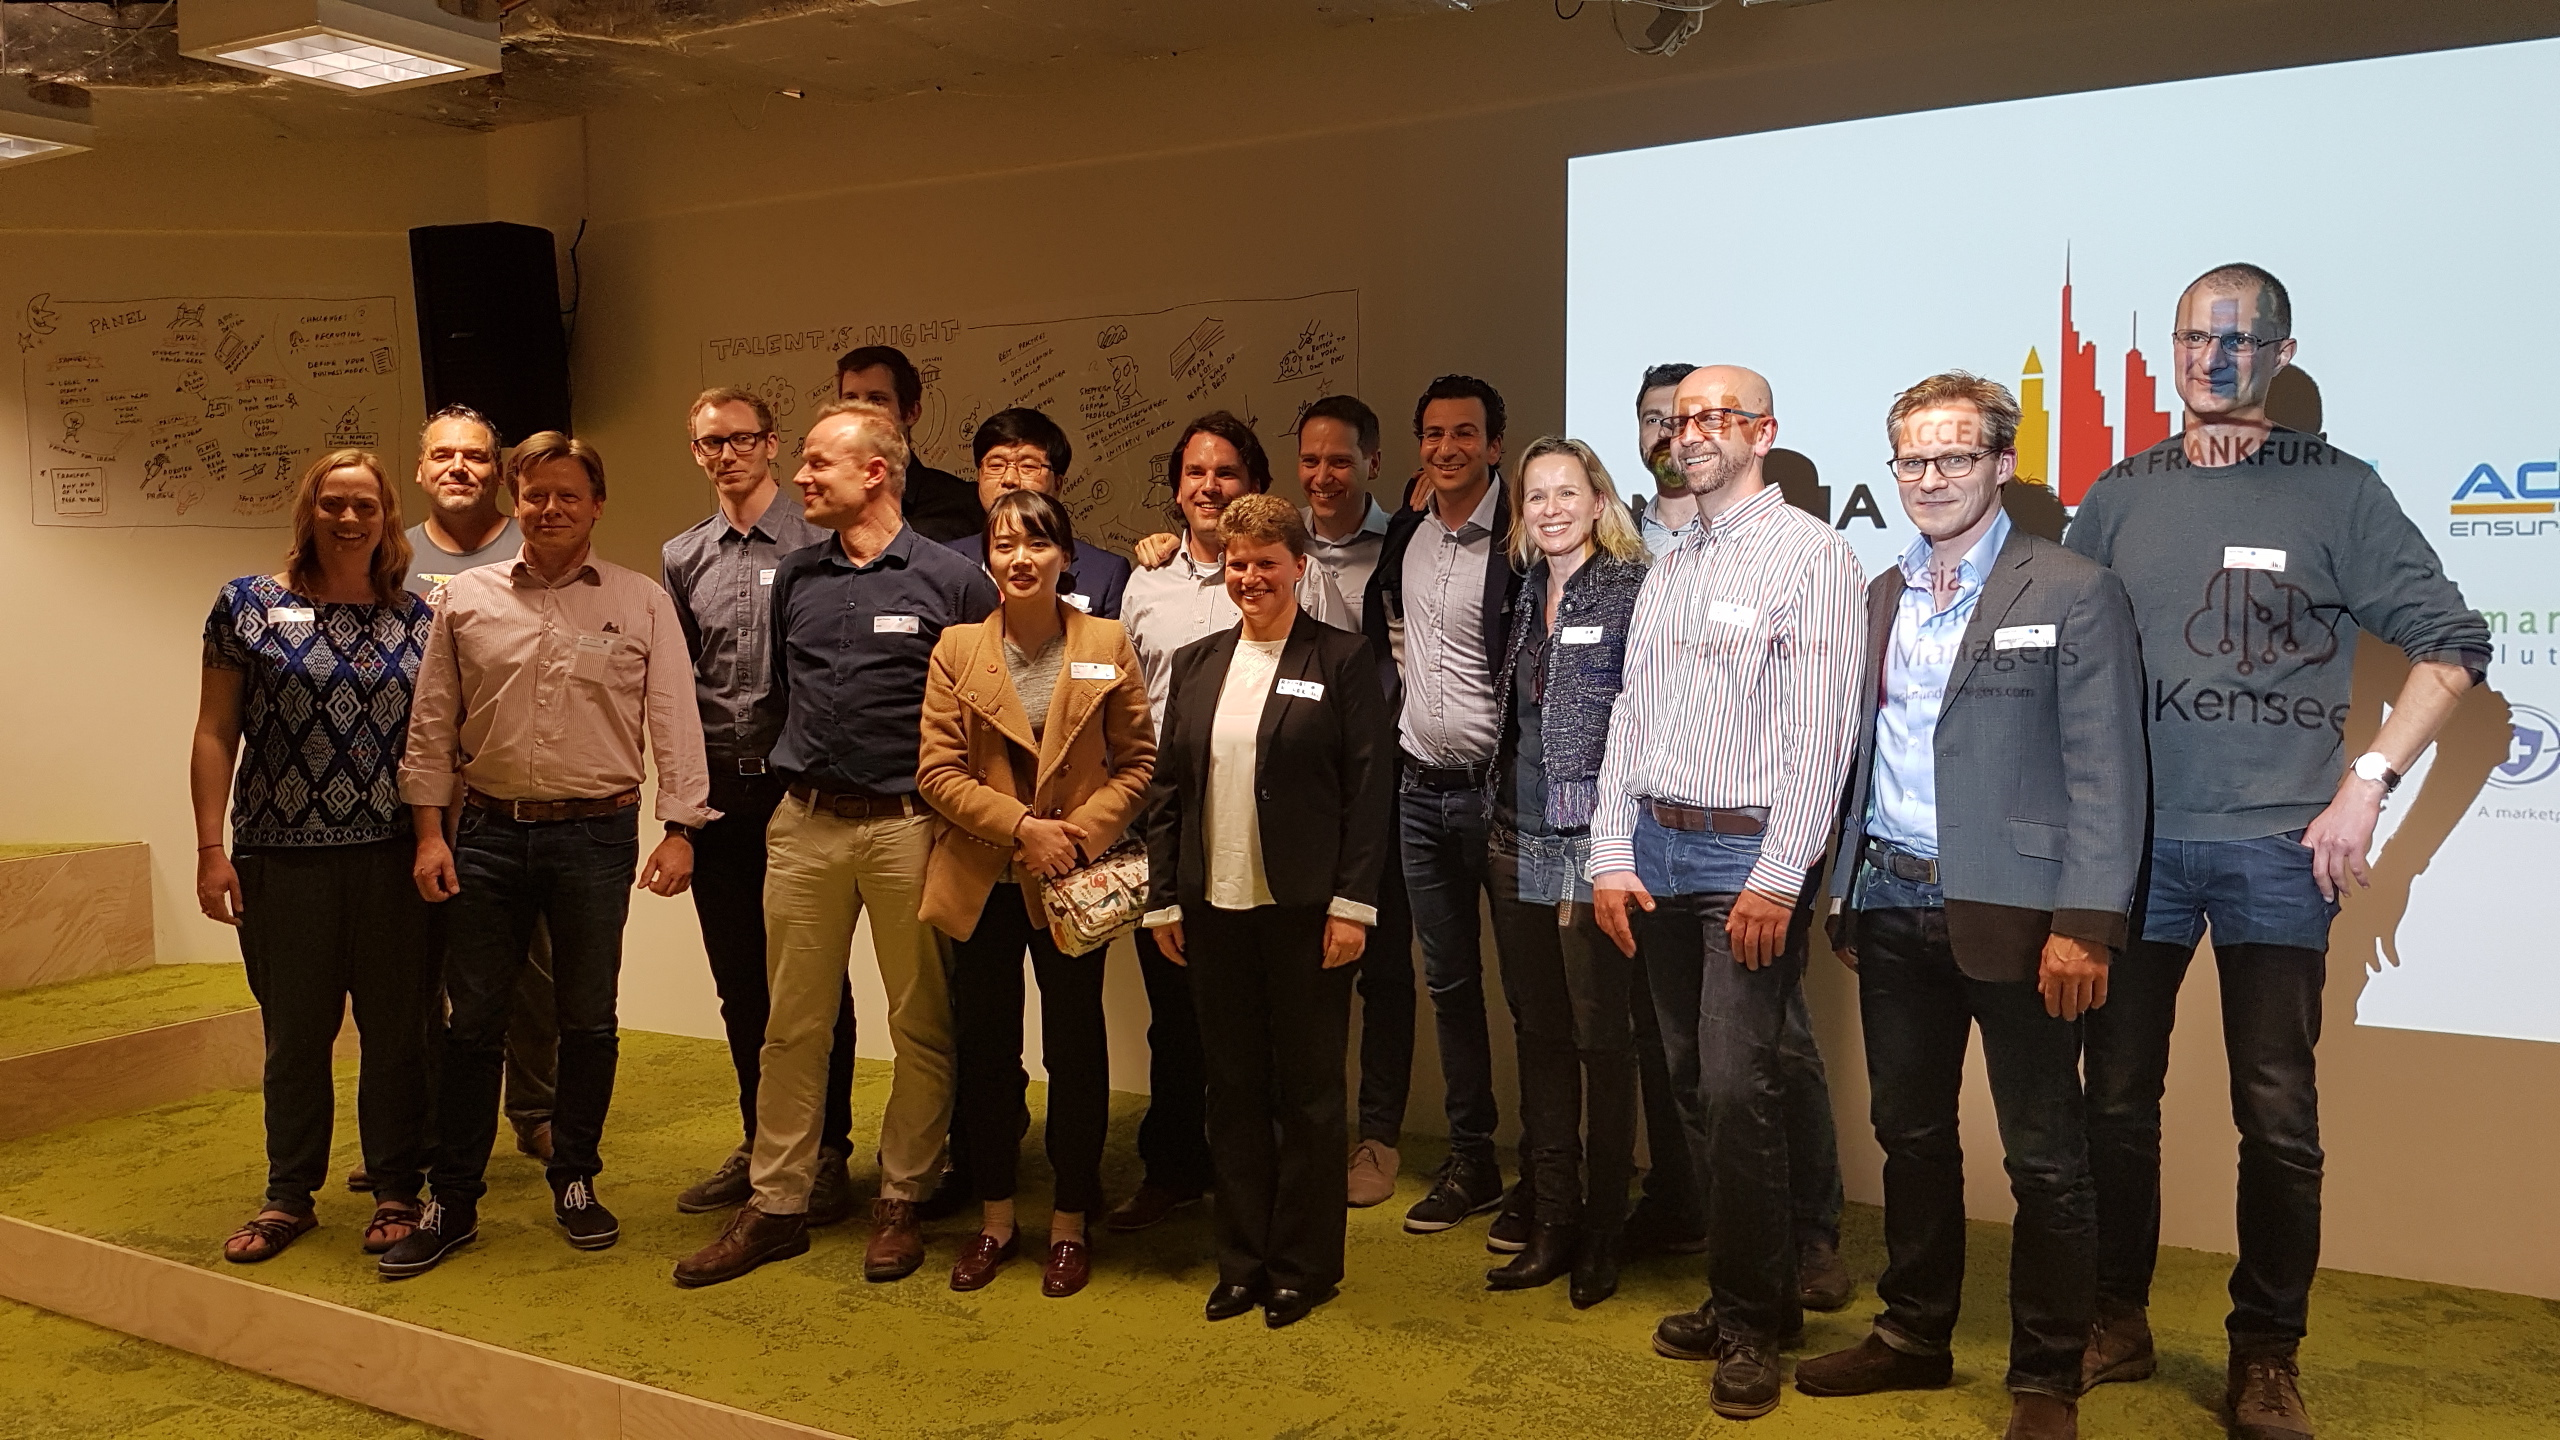 https://www.acceleratorfrankfurt.com/wp-content/uploads/2017/04/wave-2-group-picture.jpg